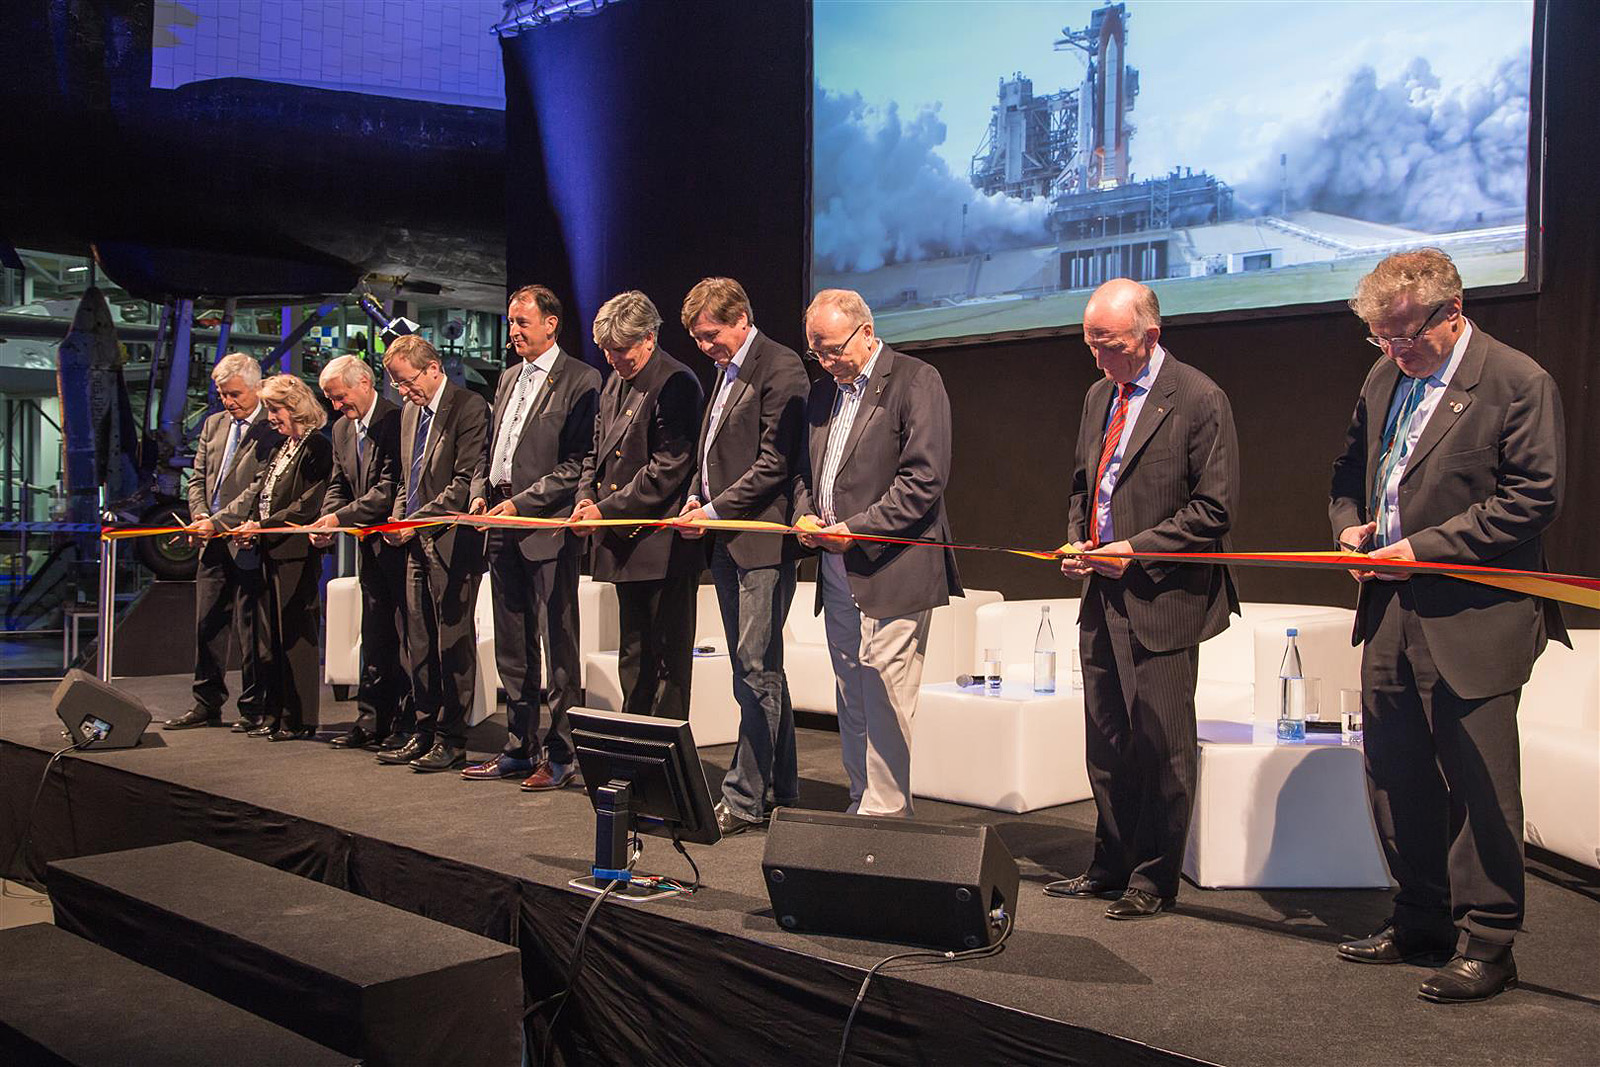 24 October, 2015 | Opening of the new exhibition, Photo: Technik Museum Speyer